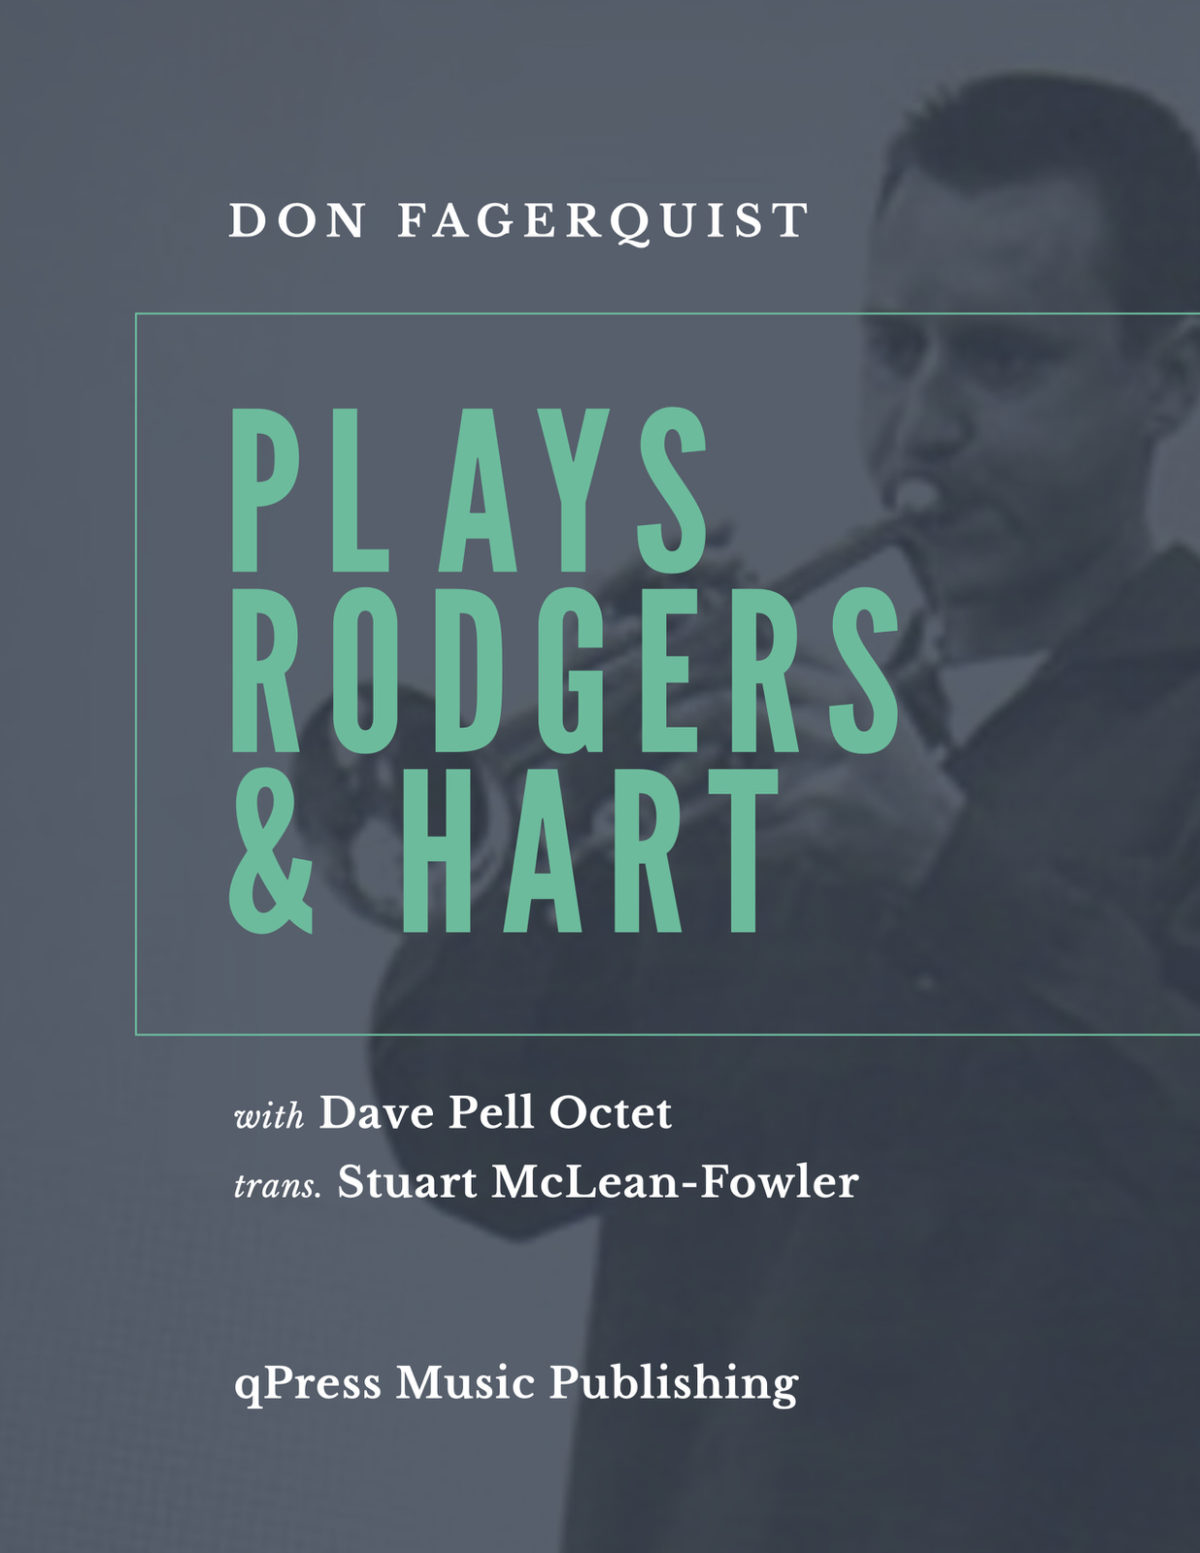 Fagerquist, Plays Rodgers & Hart